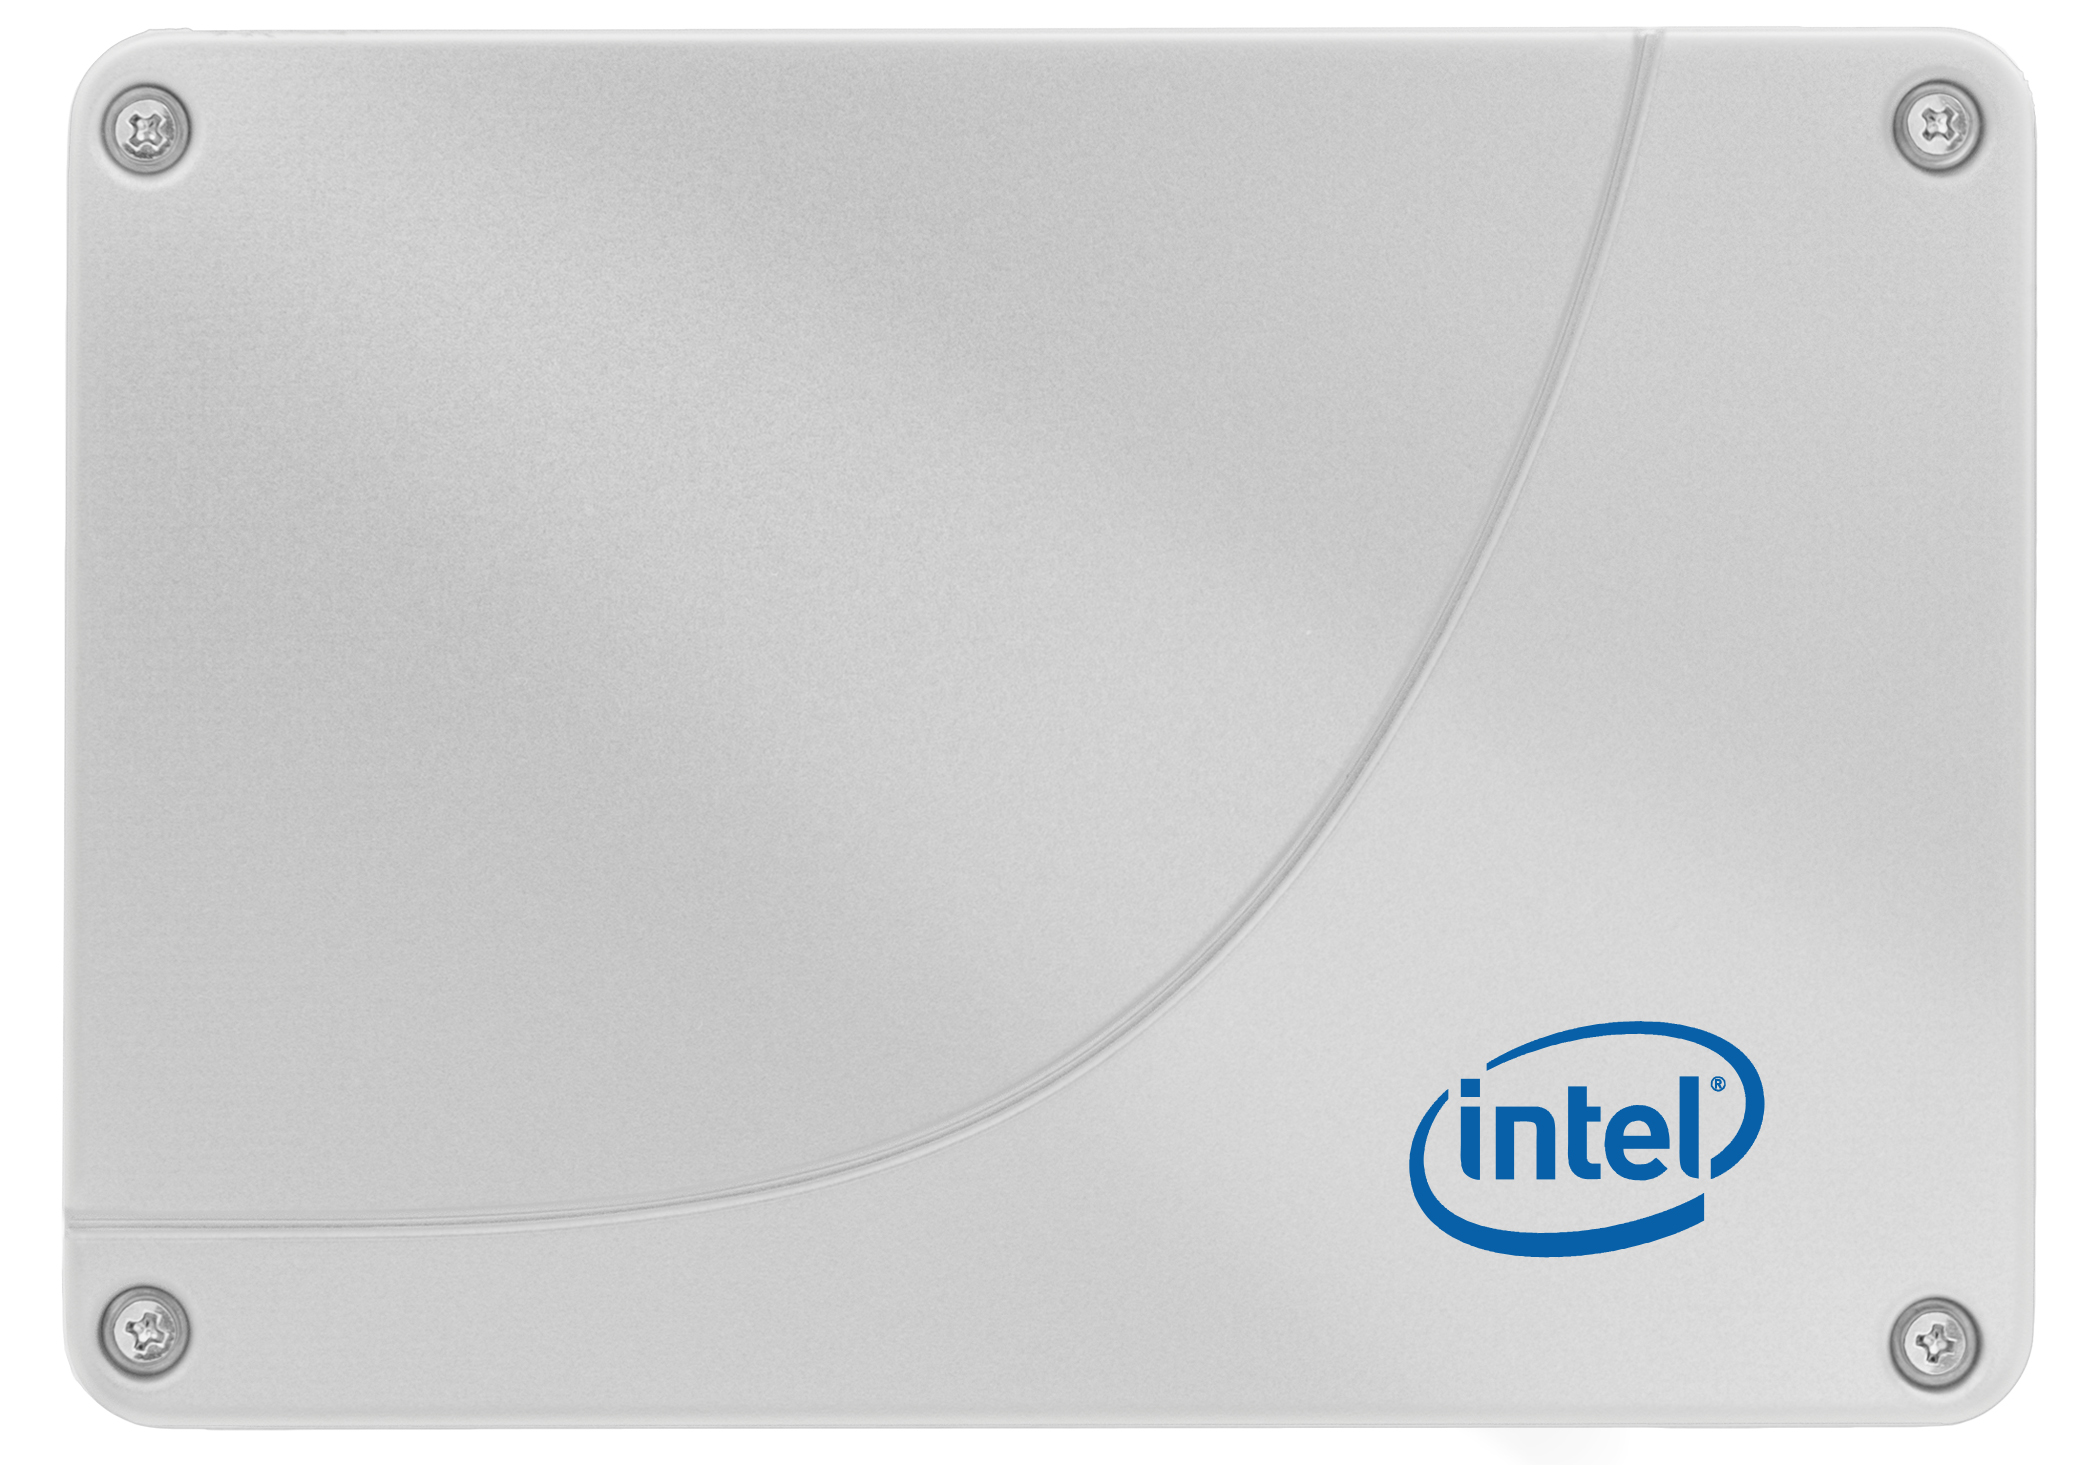 Intel SSD 330 straight photo.jpg